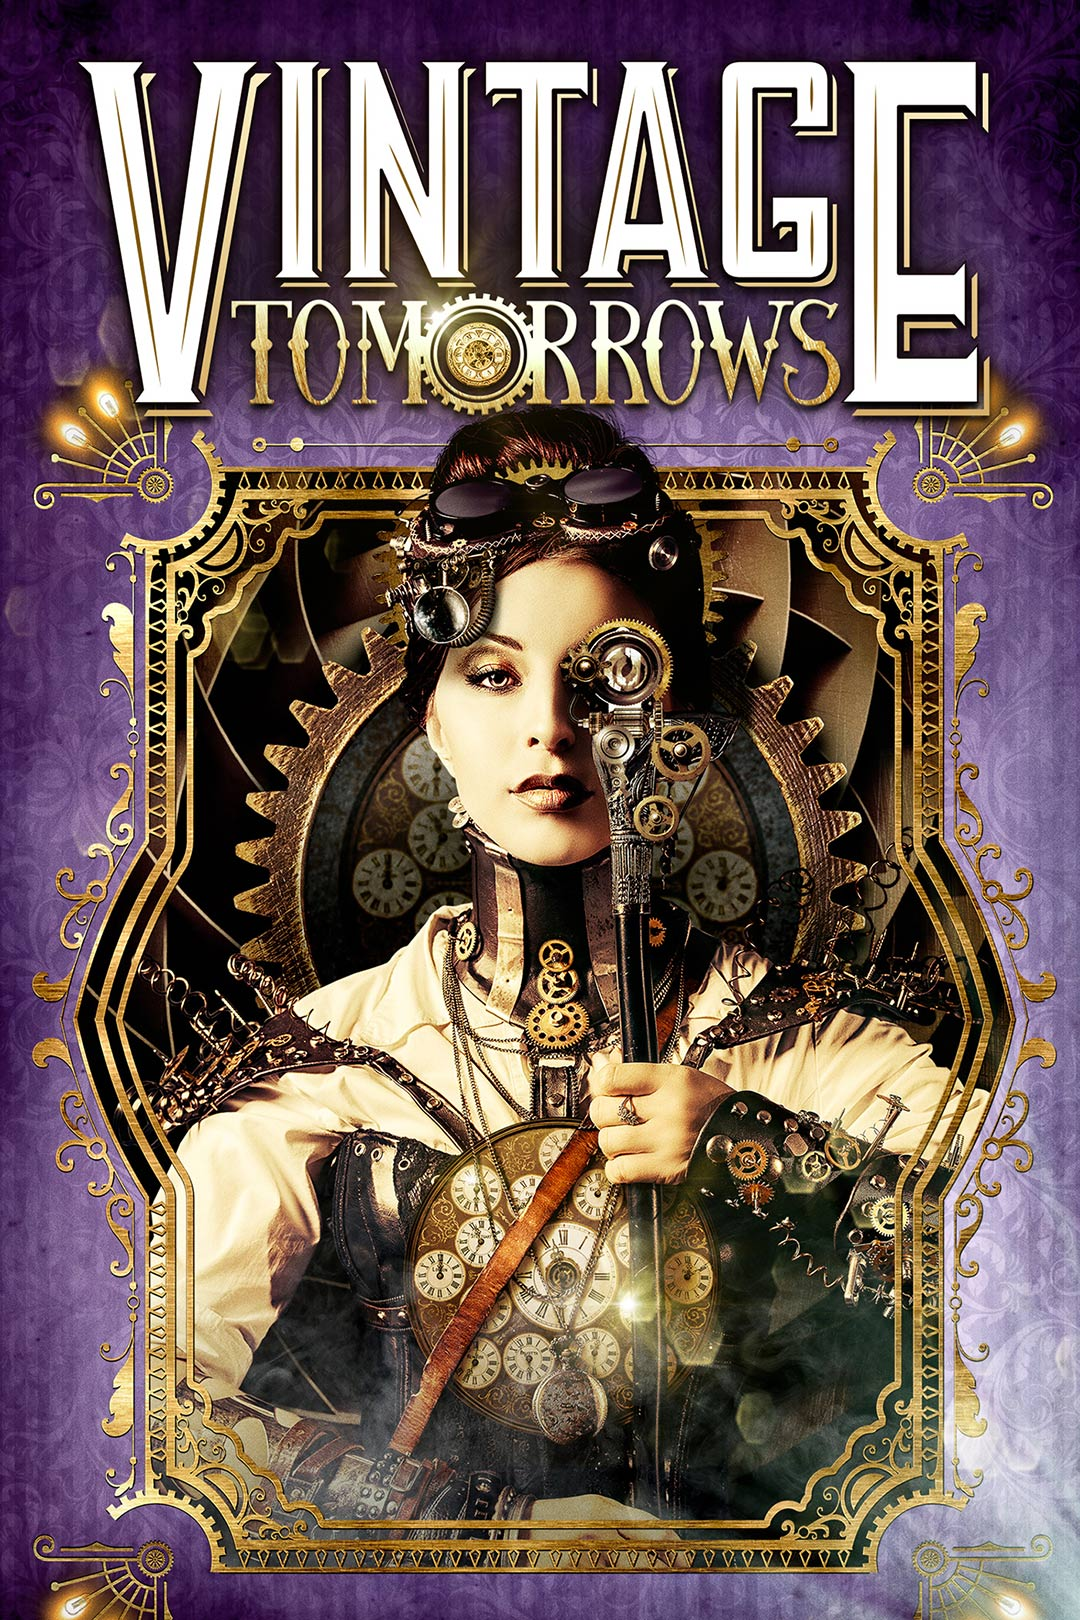 Vintage Tomorrows Poster #1